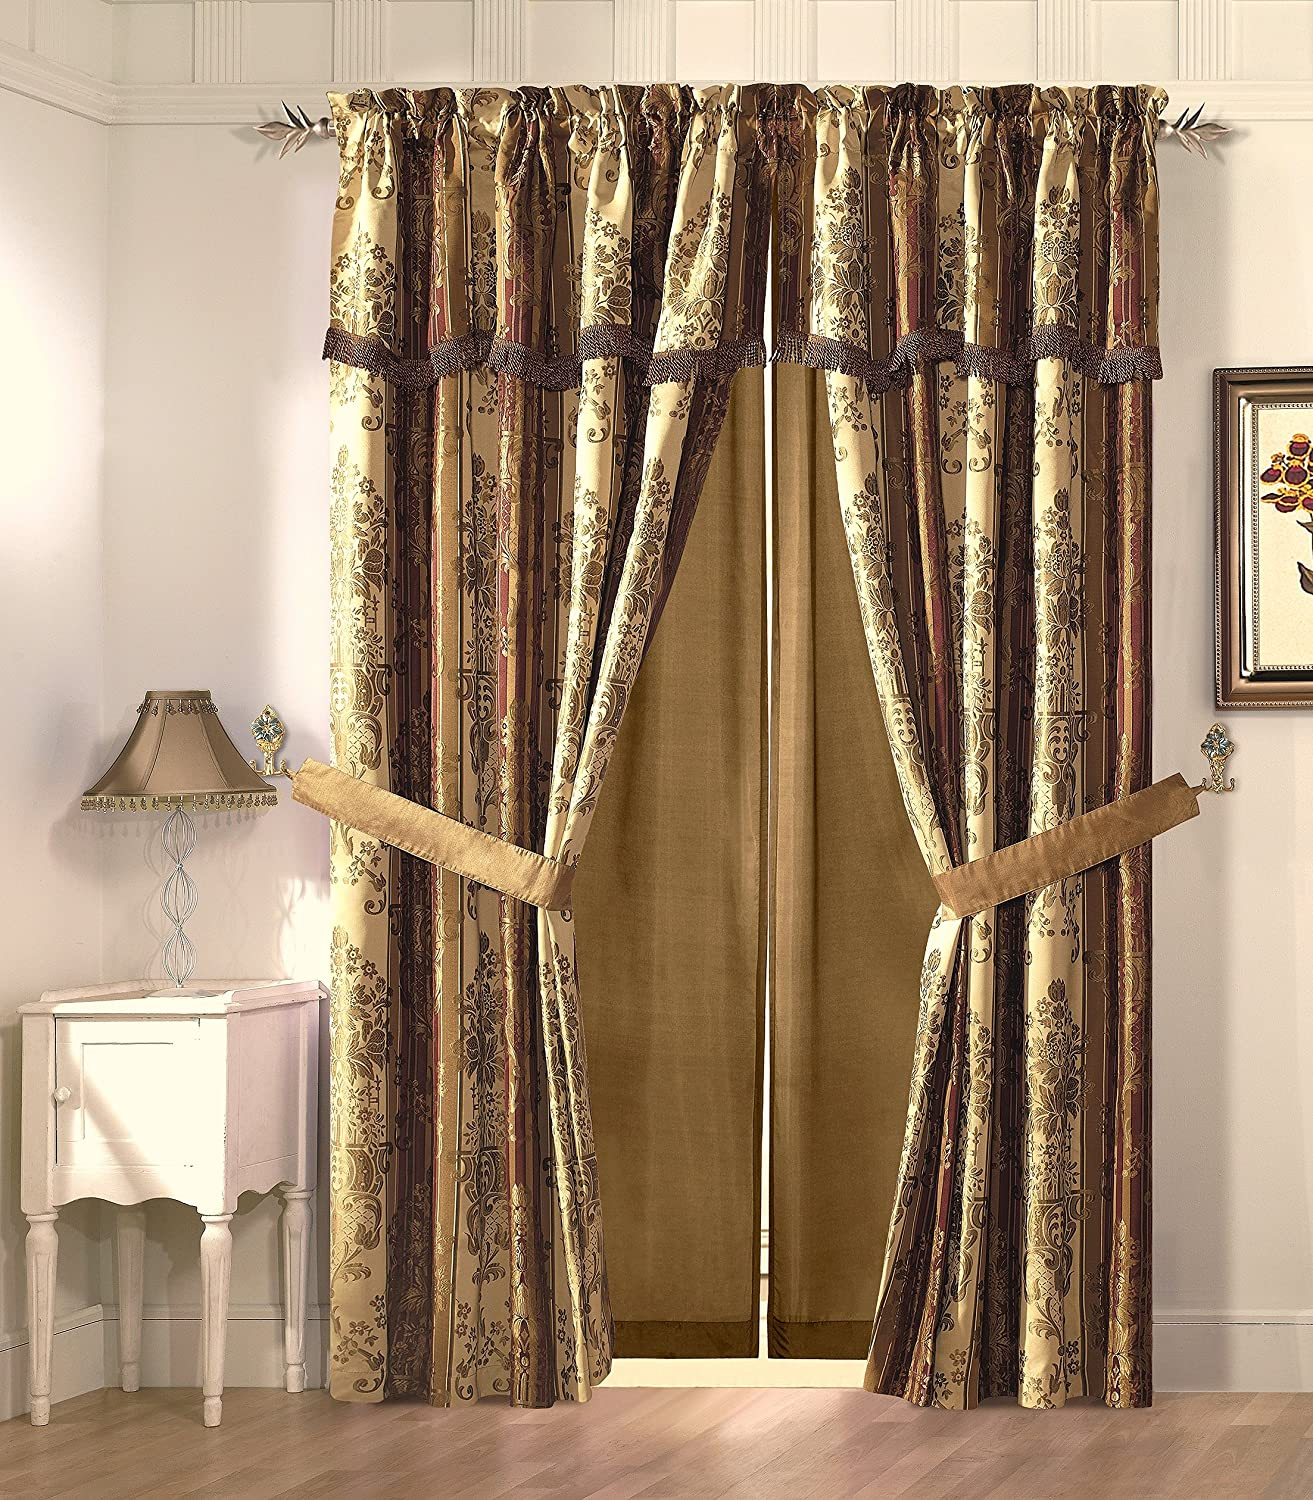 Cozy Beddings Vintage Stripe 2-Panel Floral Design Jacquard Window Curtain/Drape Set